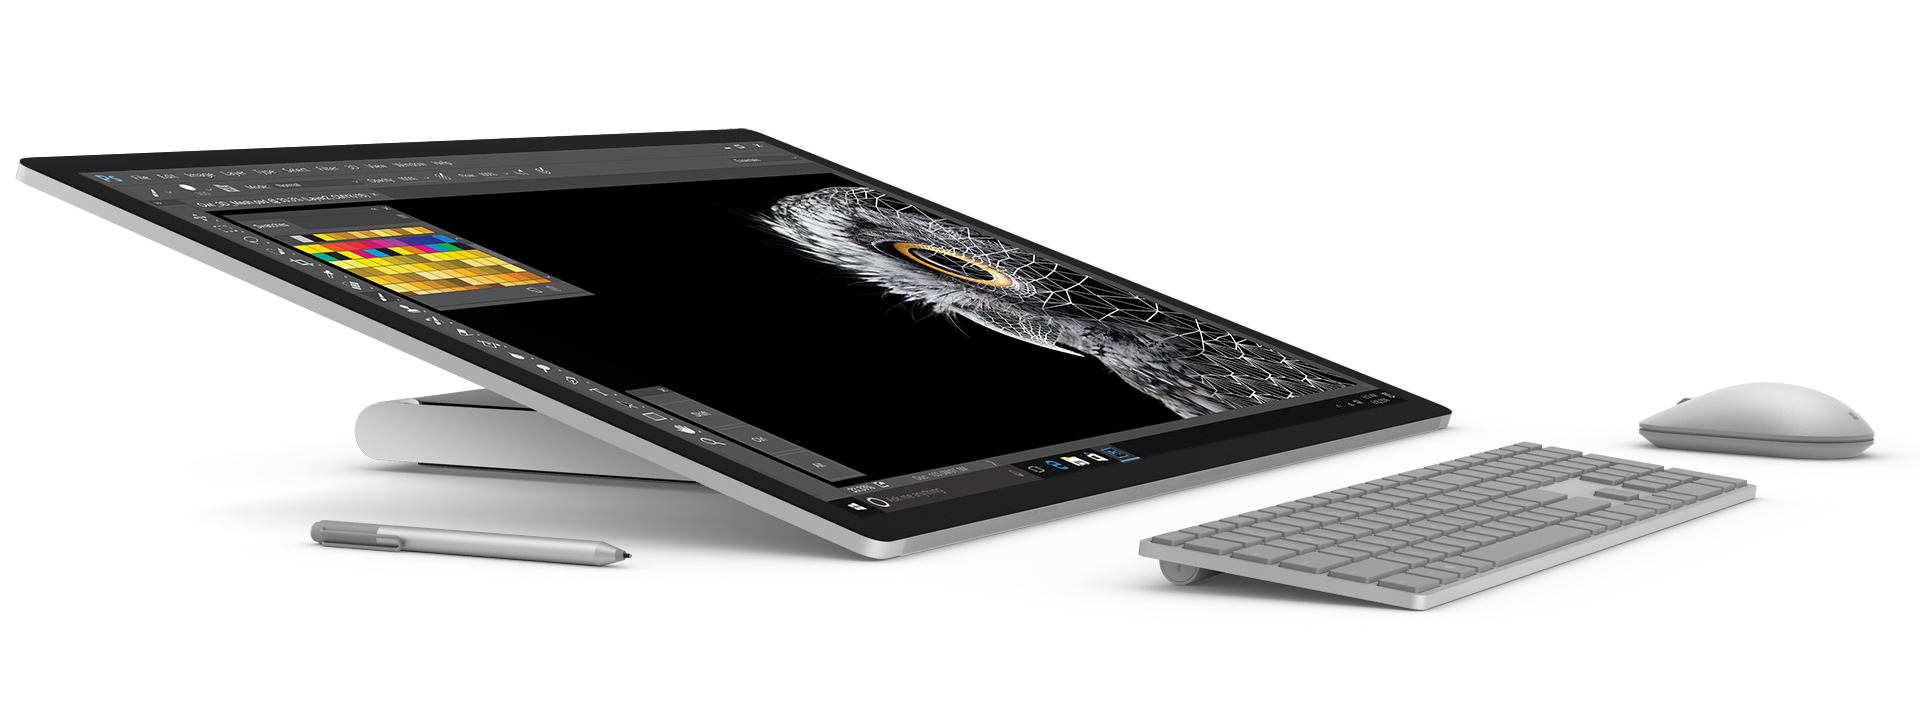 Surface Studio laid flat in studio mode, facing right with Surface Pen and Surface Keyboard & Surface mouse in front of it